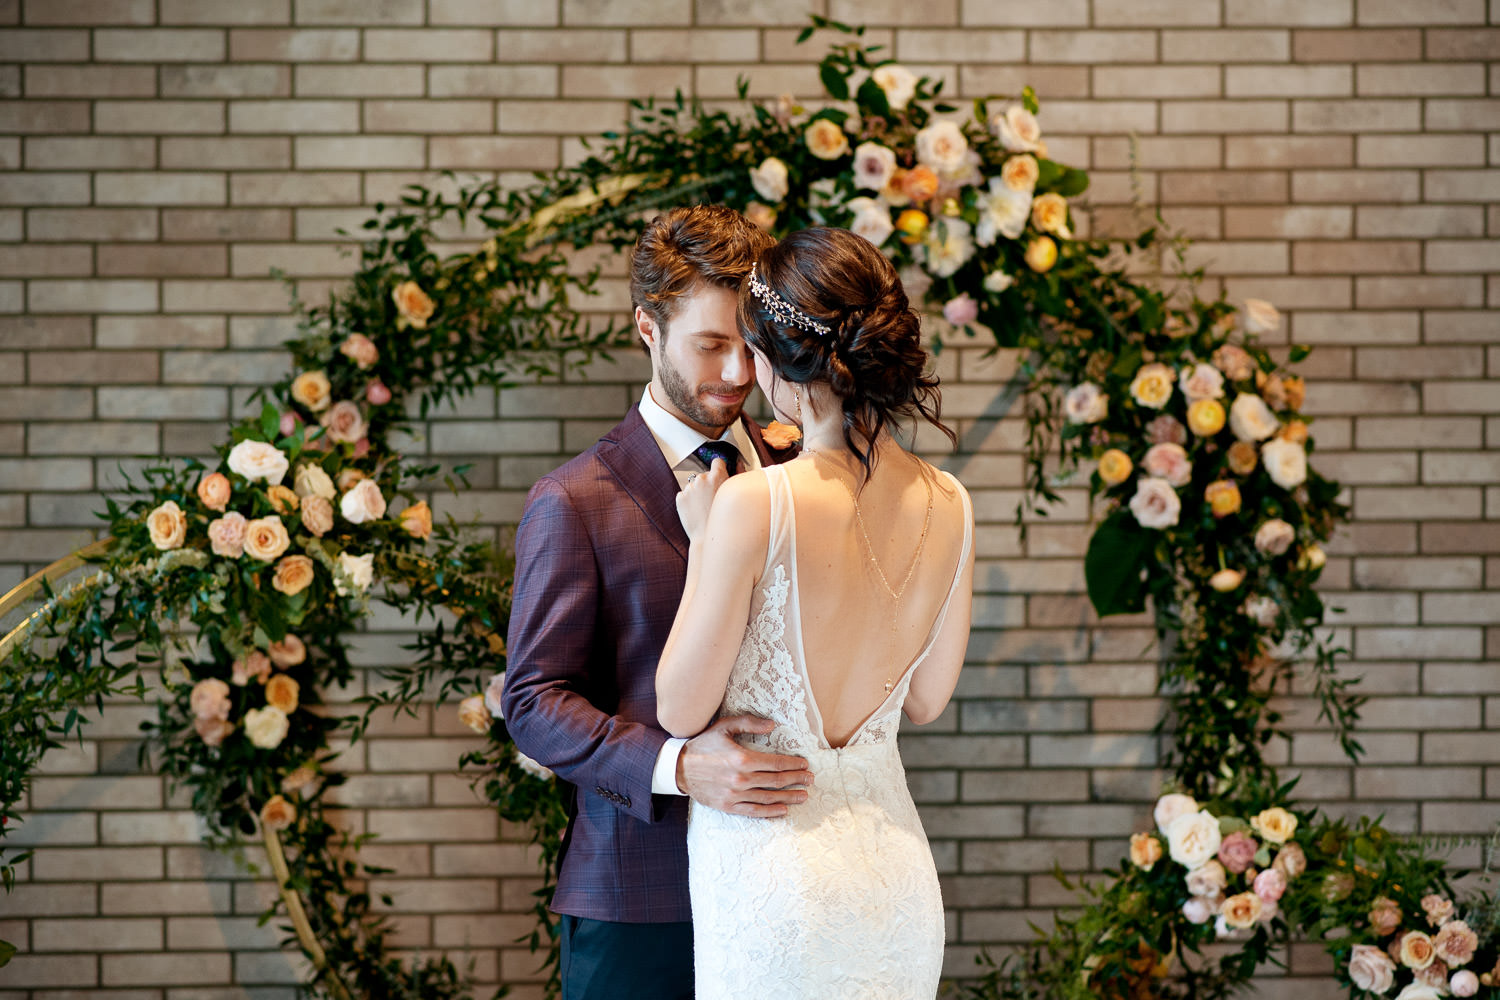 bride and groom with circle wedding arches in Calgary captured by Tara Whittaker Photography